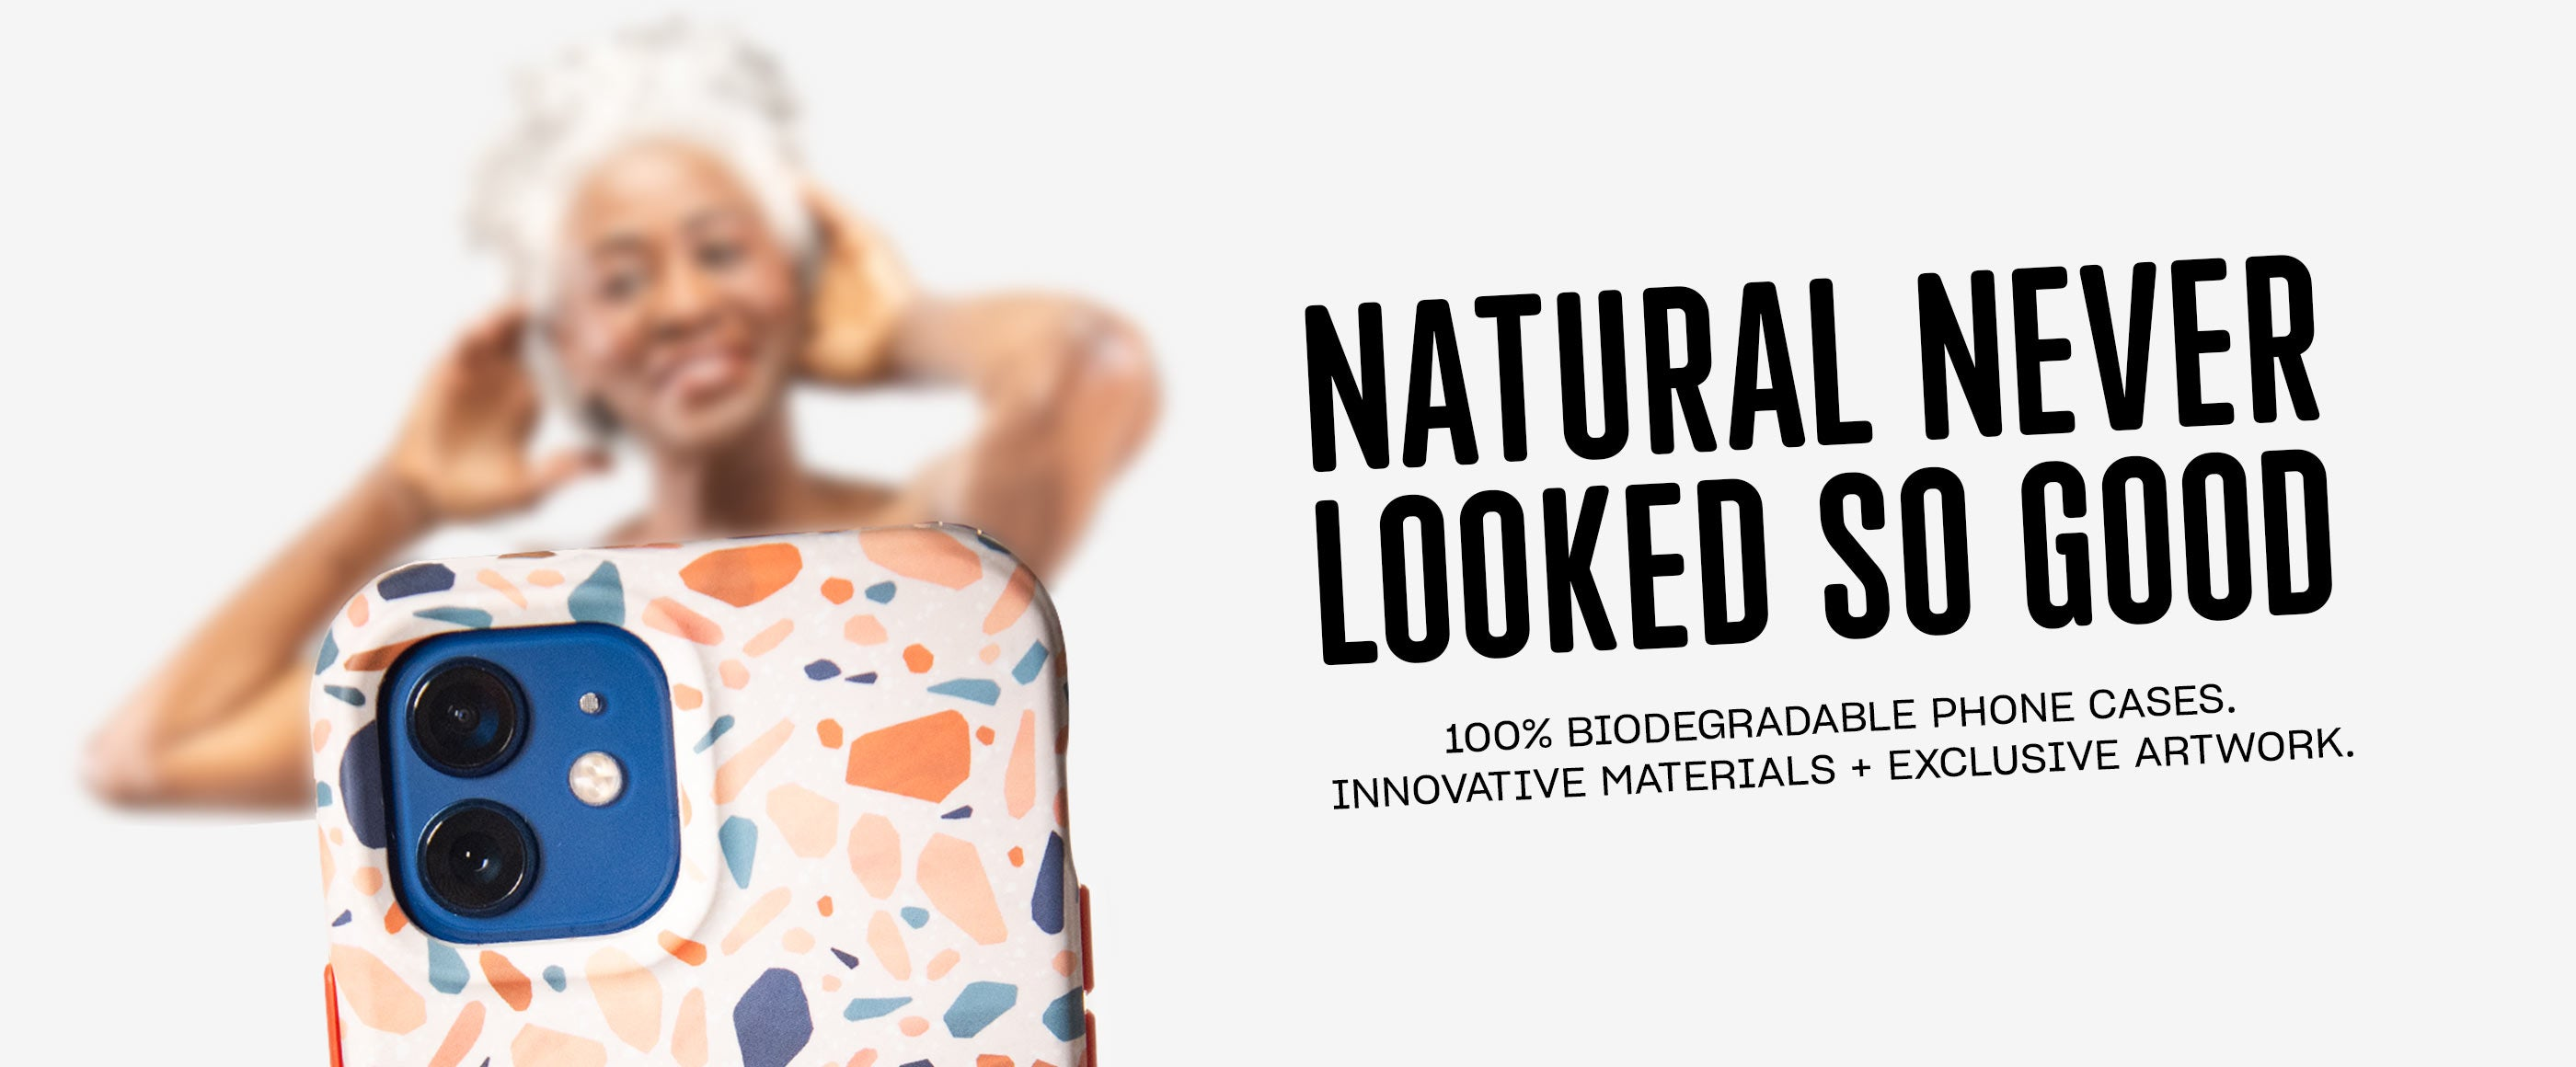 Tech21 biodegradable phone cases